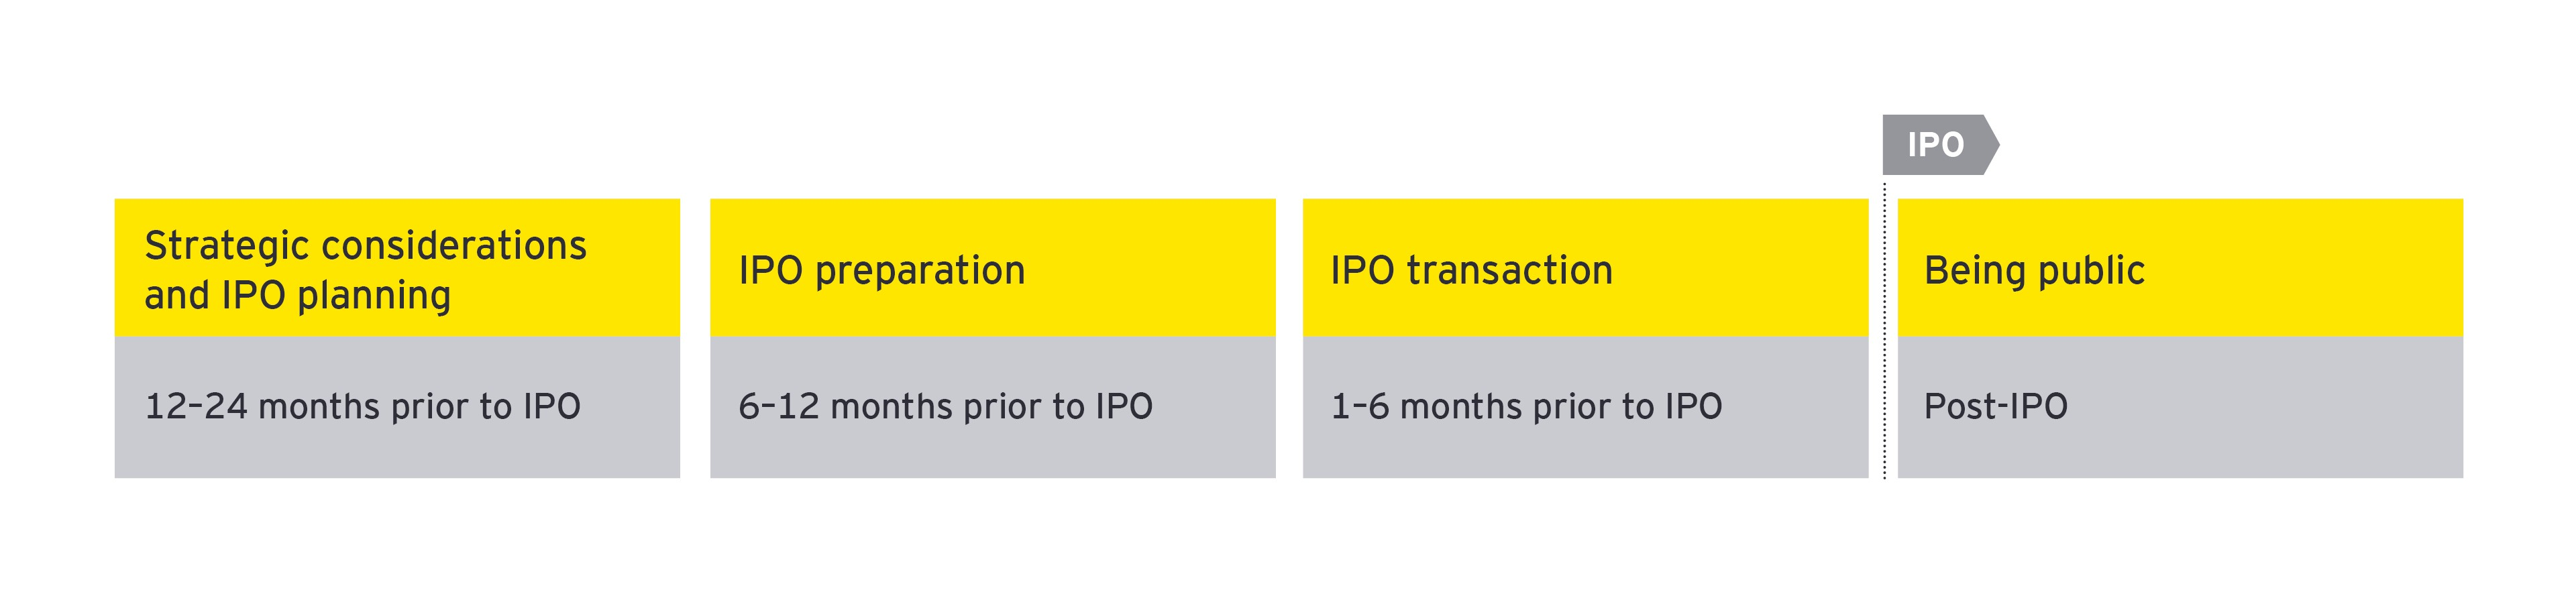 EY IPO value journey